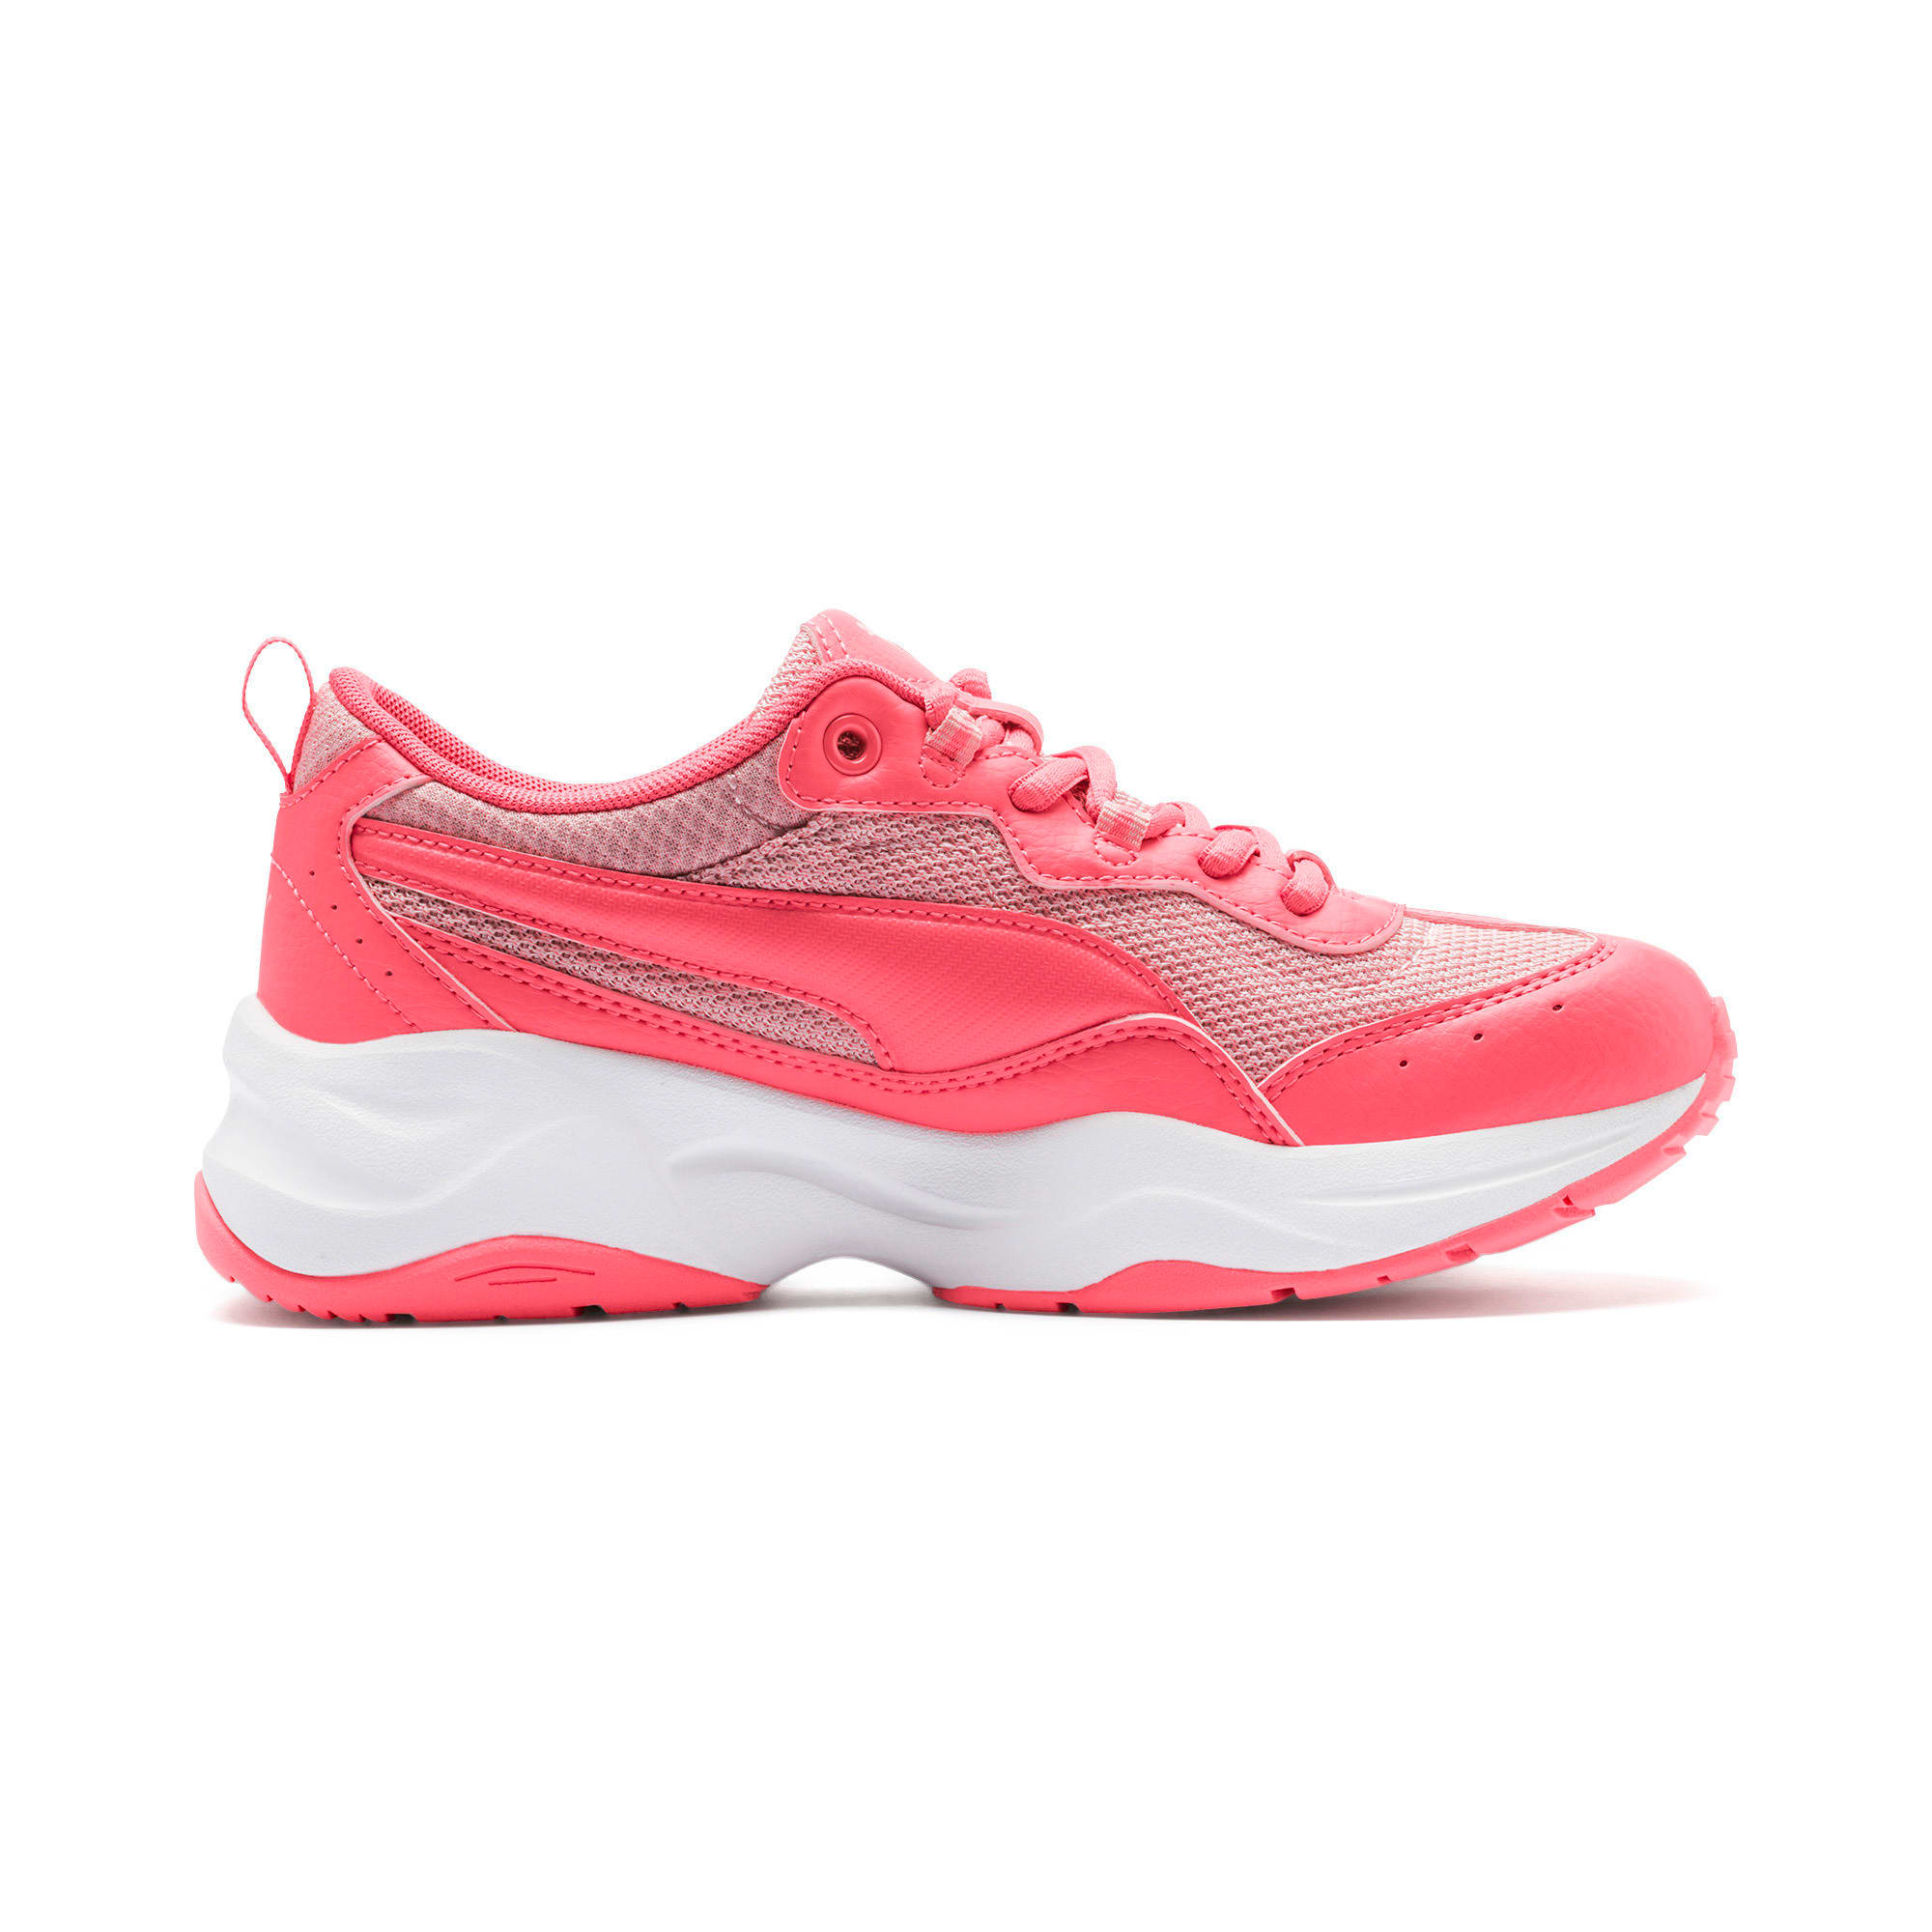 Thumbnail 5 of Cilia Youth Trainers, Calypso Coral-B Rose-White, medium